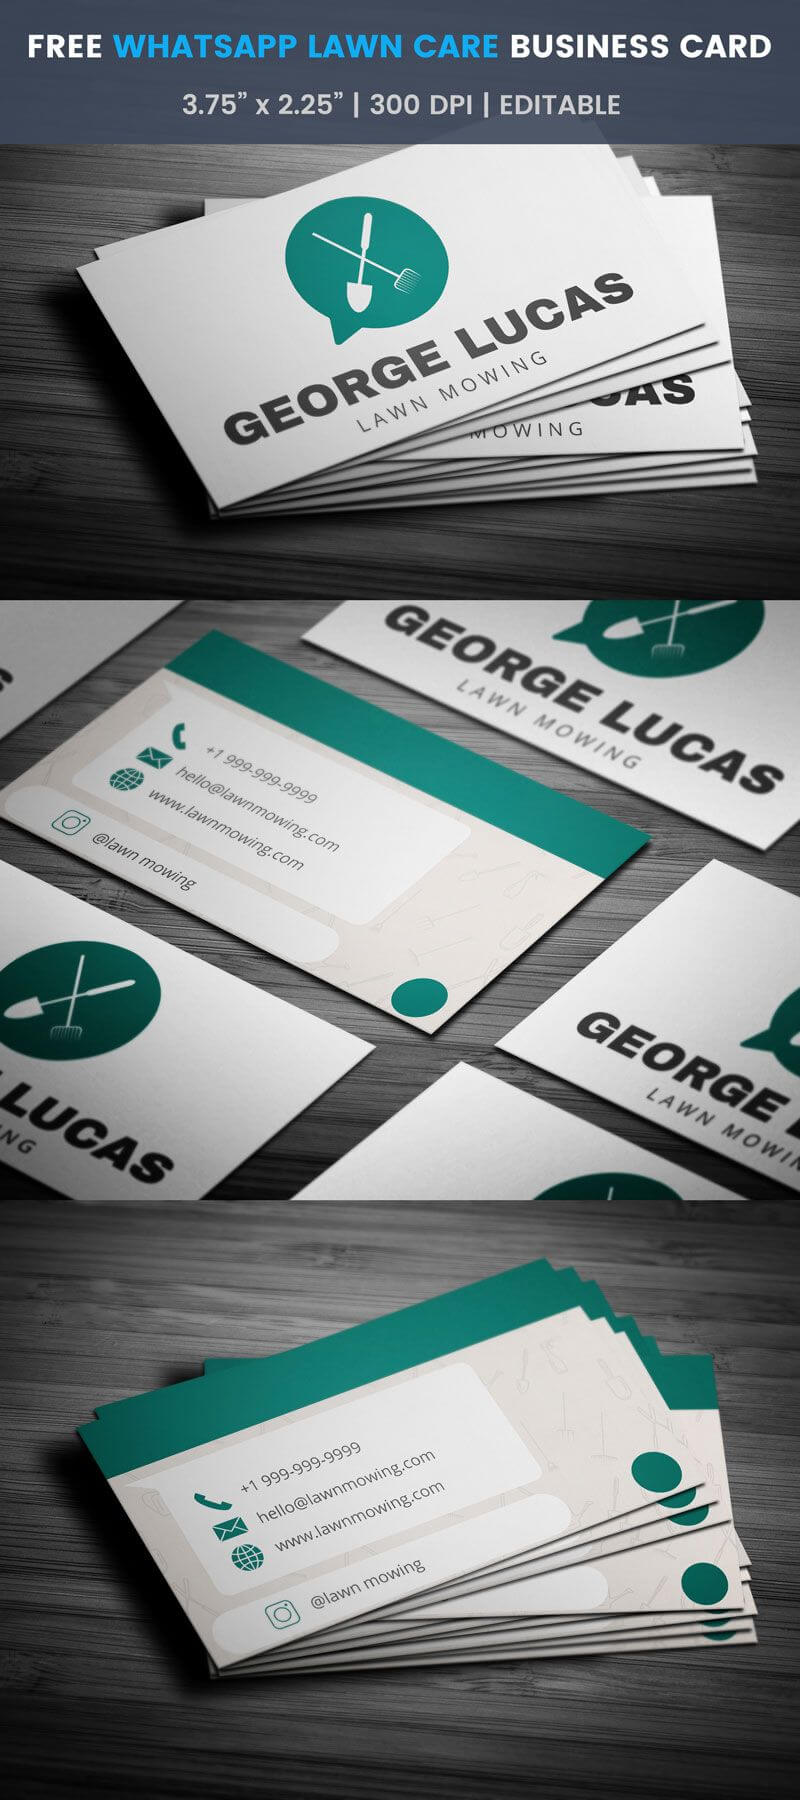 Whatsapp Themed Lawn Care Business Card - Full Preview intended for Lawn Care Business Cards Templates Free